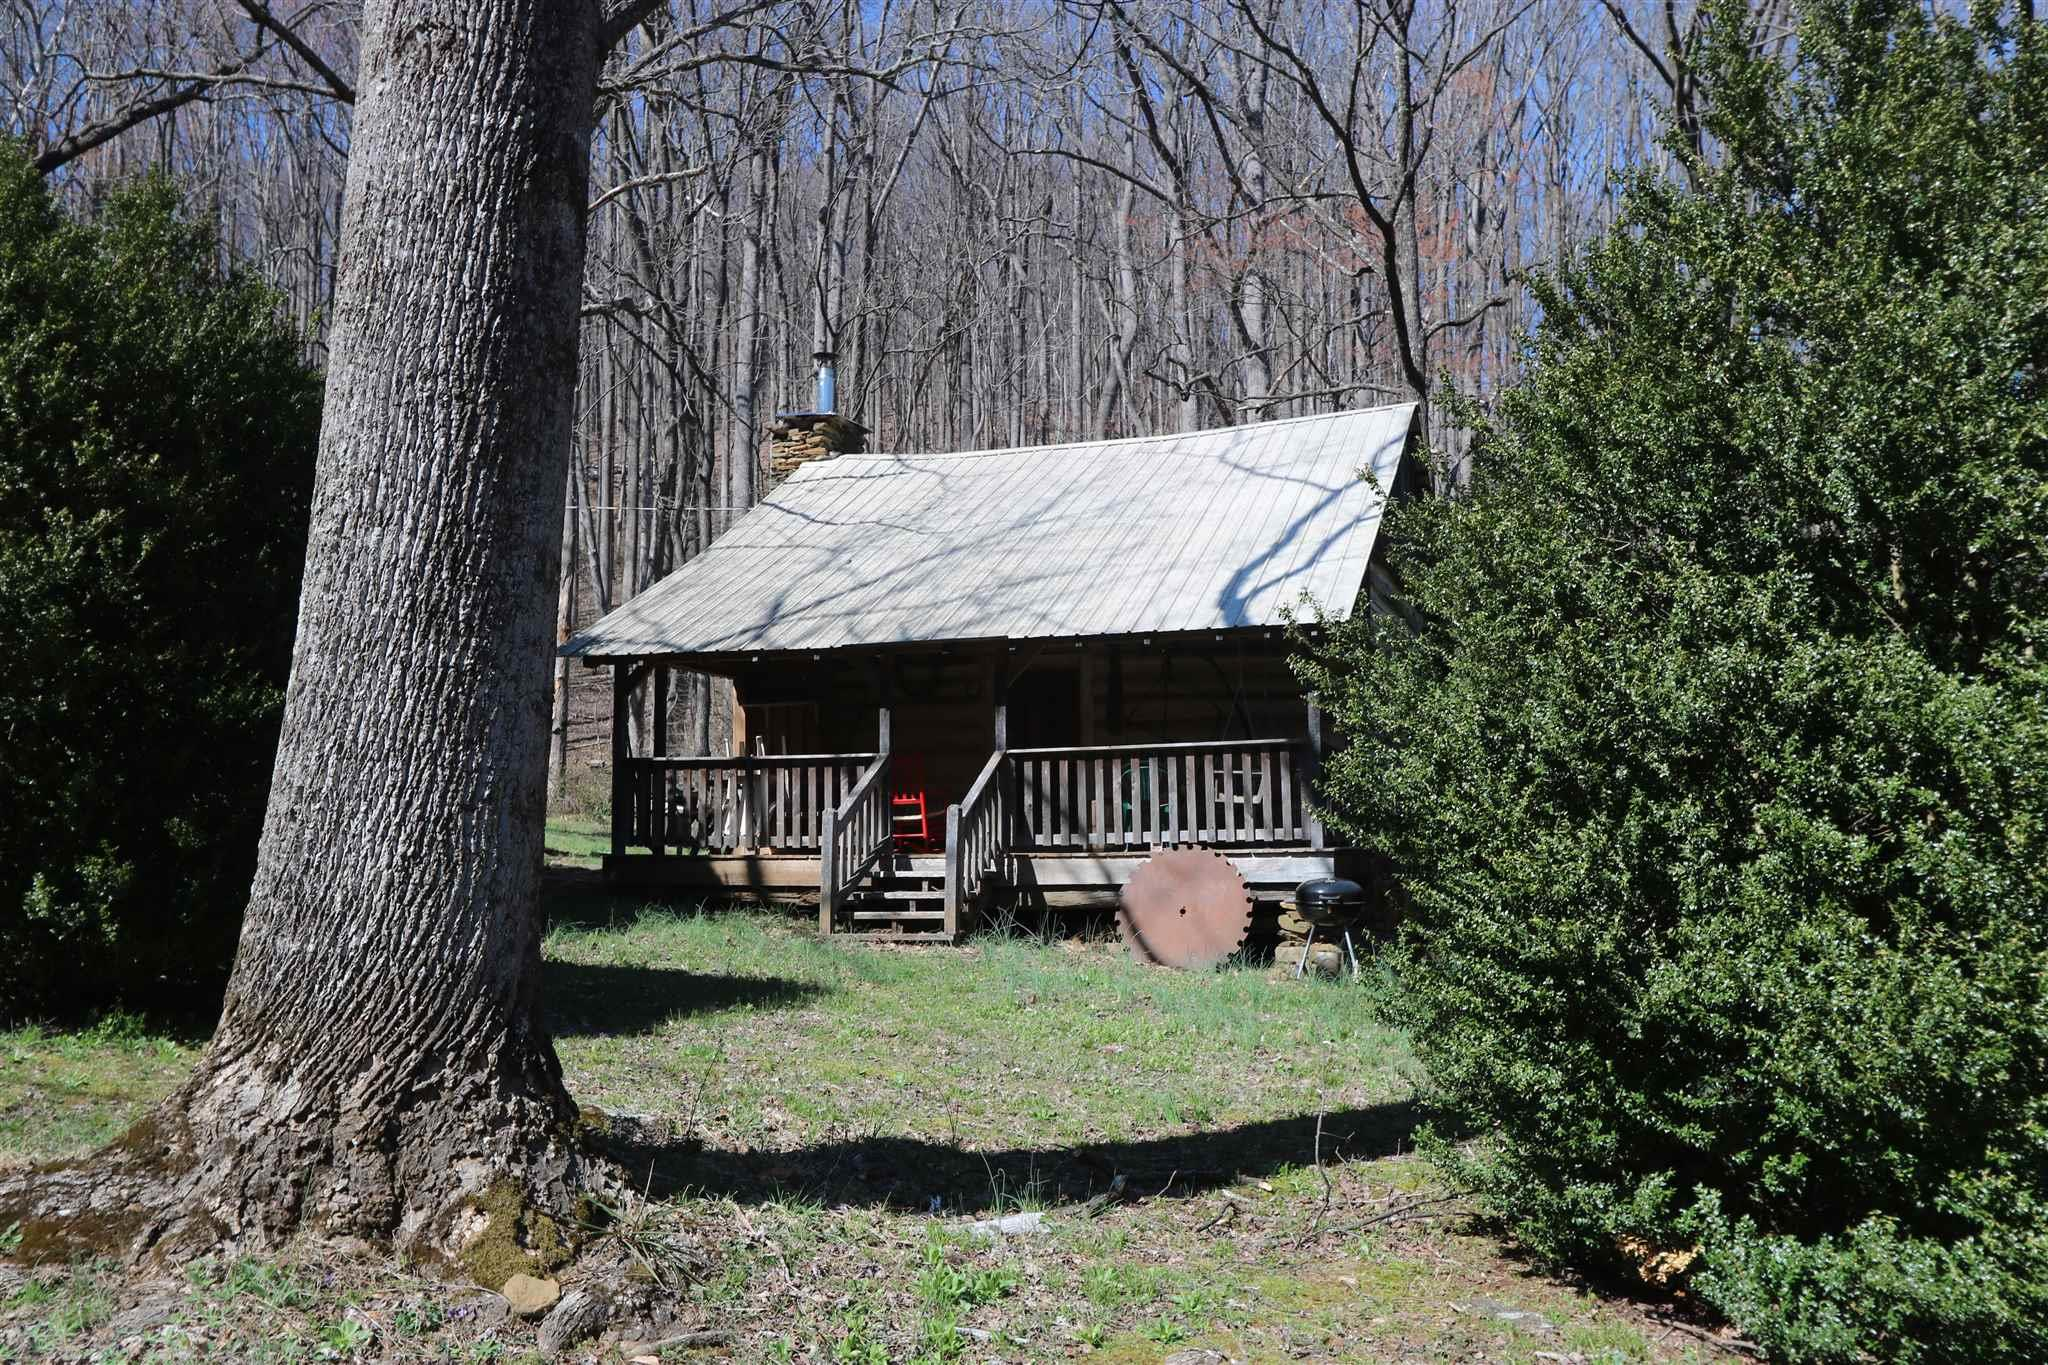 Charming Civil War era cabin with power, water and full bath on 19+/- acres on a private dead end road.  This place has lots of character and privacy but with good access.  Enjoy the peace and quite of the mountains in this log cabin home.  Come hike the woods and wade the brook.